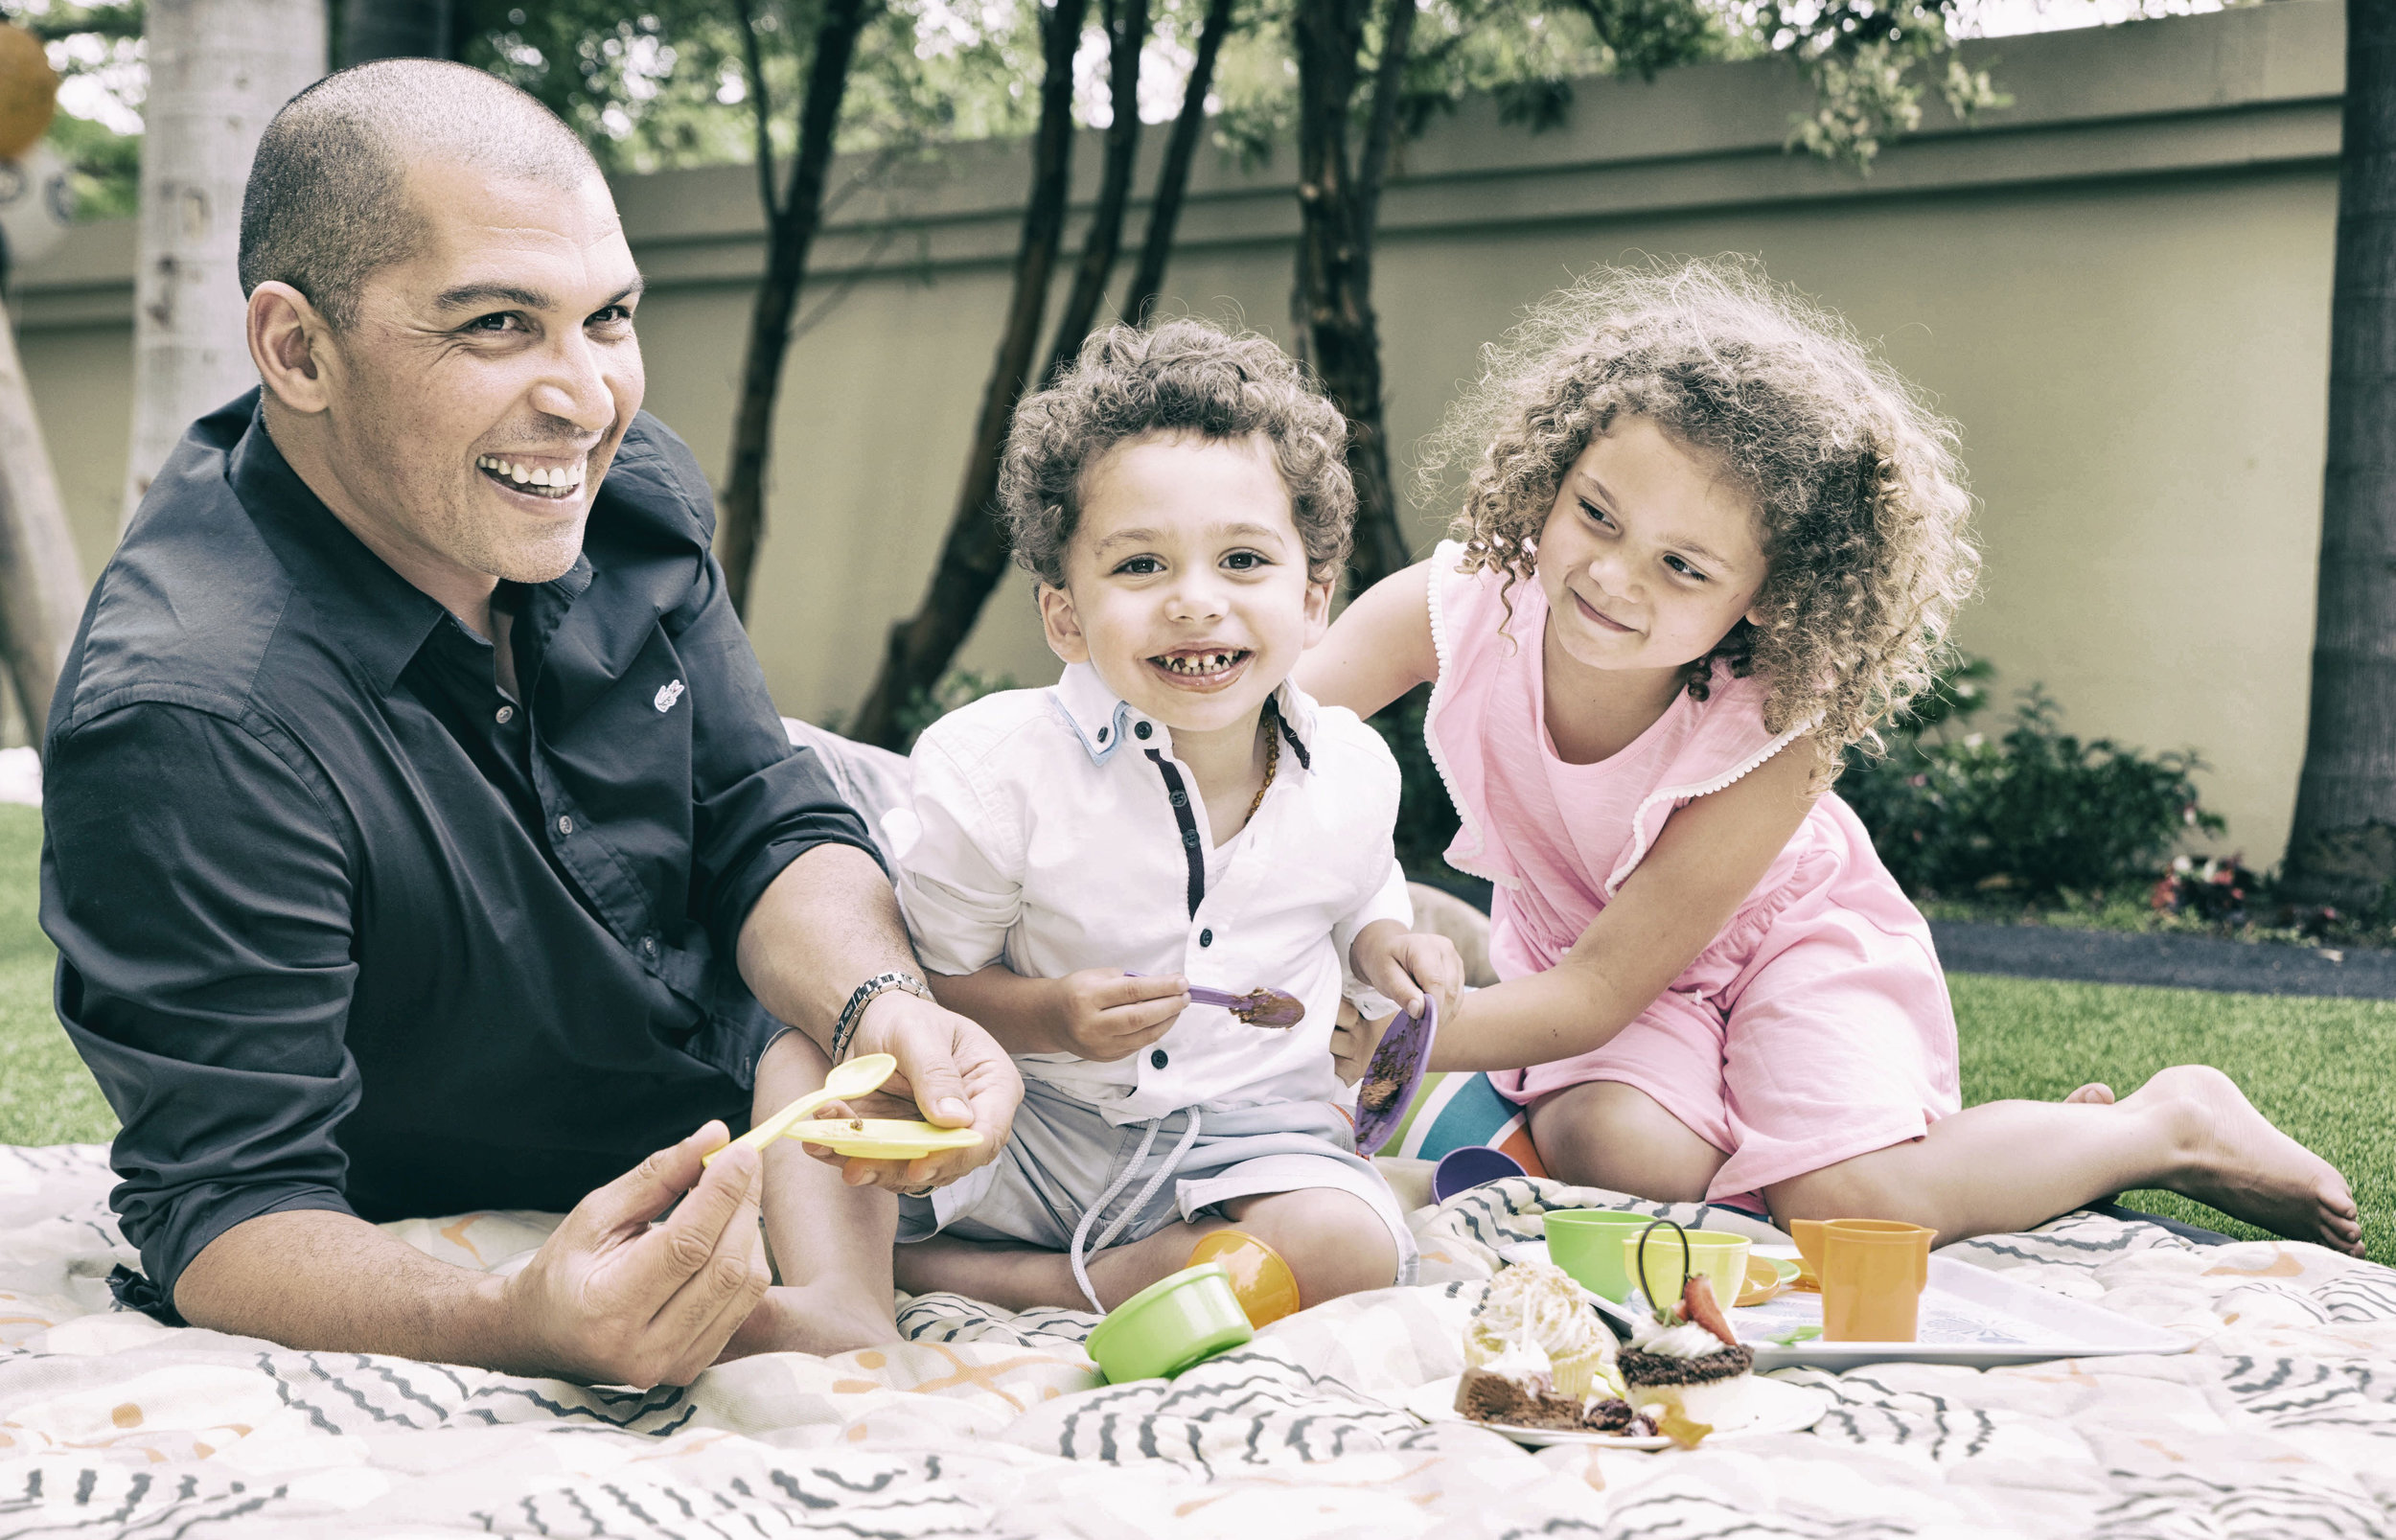 Reuben with his two children.